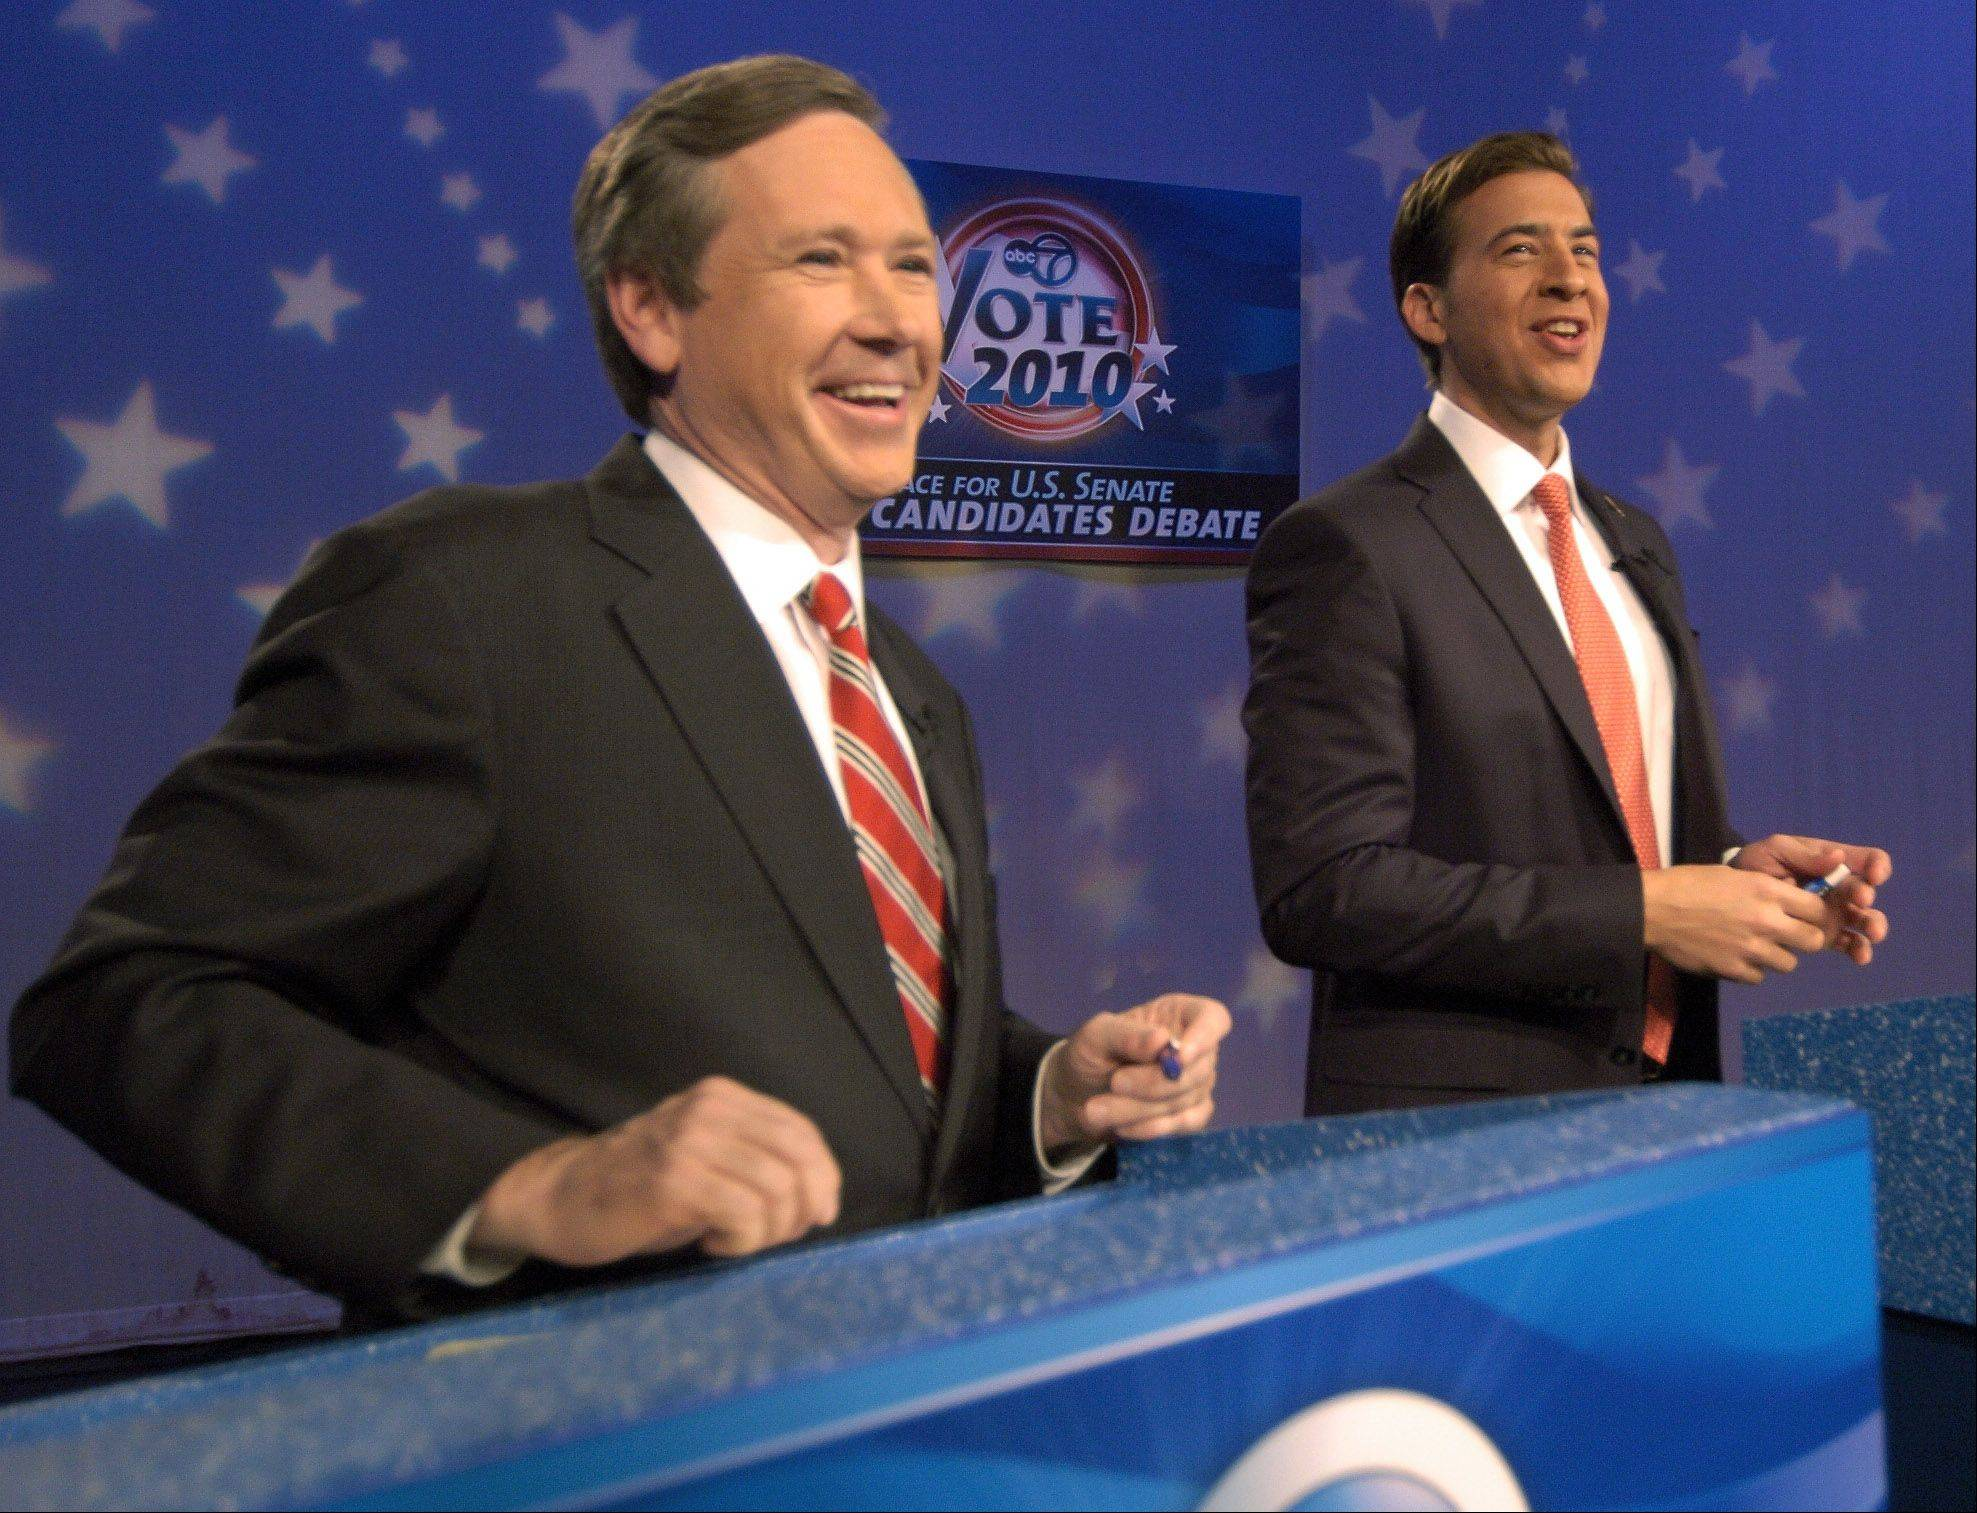 Republican Mark Kirk, left, and Democrat Alexi Giannoulias, candidates for the U.S. Senate, prepare for a debate at the WLS-7 studio, Chicago.